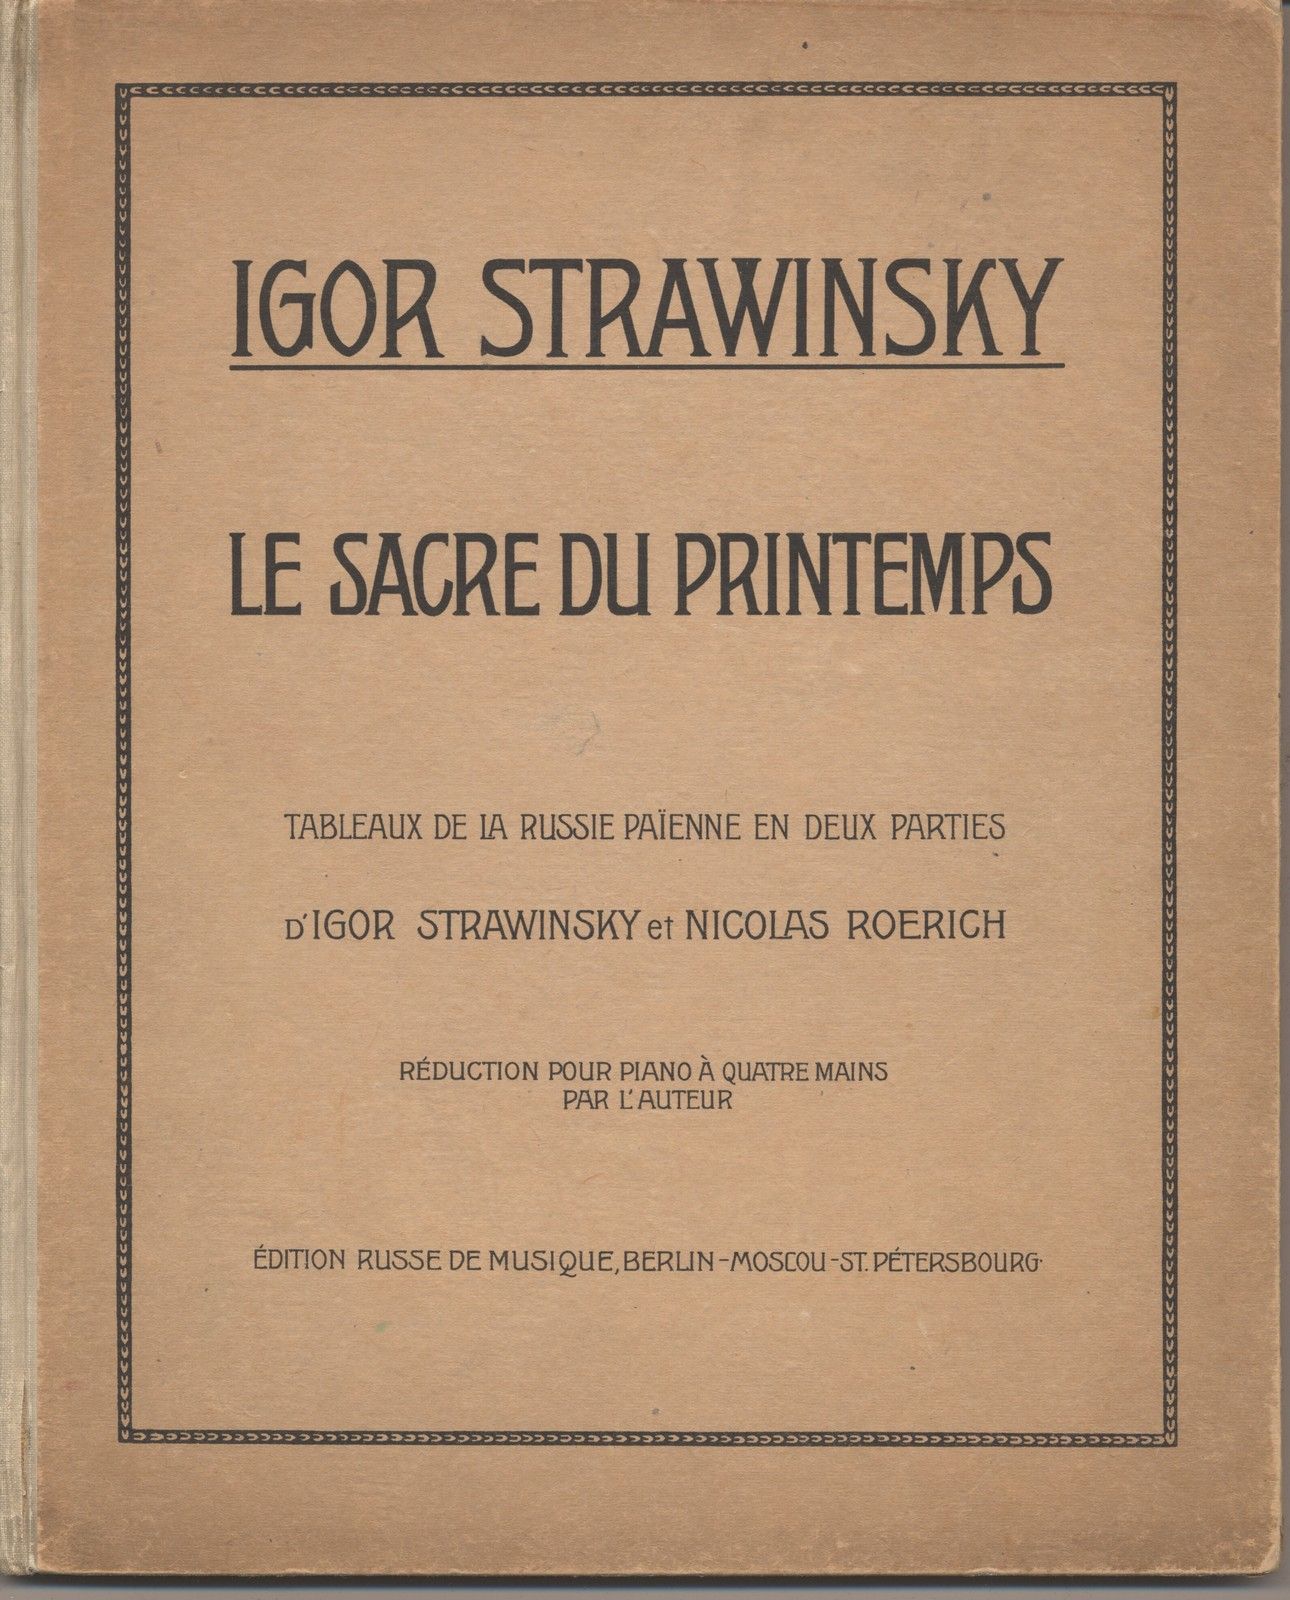 Le Sacre Du Printemps Music Score Of Le Sacre Du Printemps Igor Stravinsky With